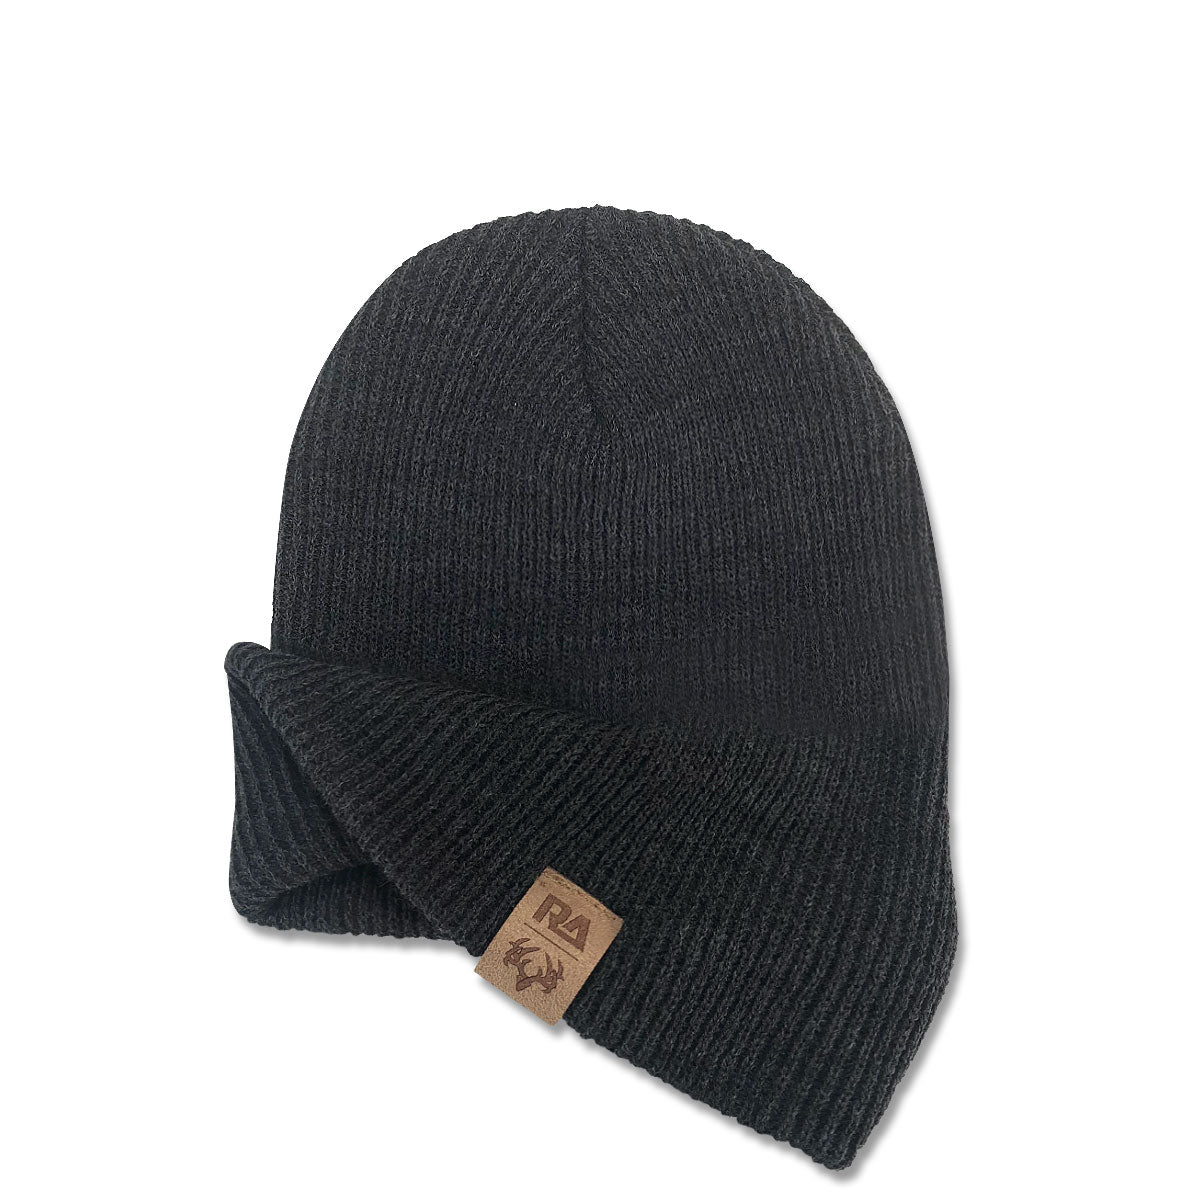 Ace Slouch Knit Beanie